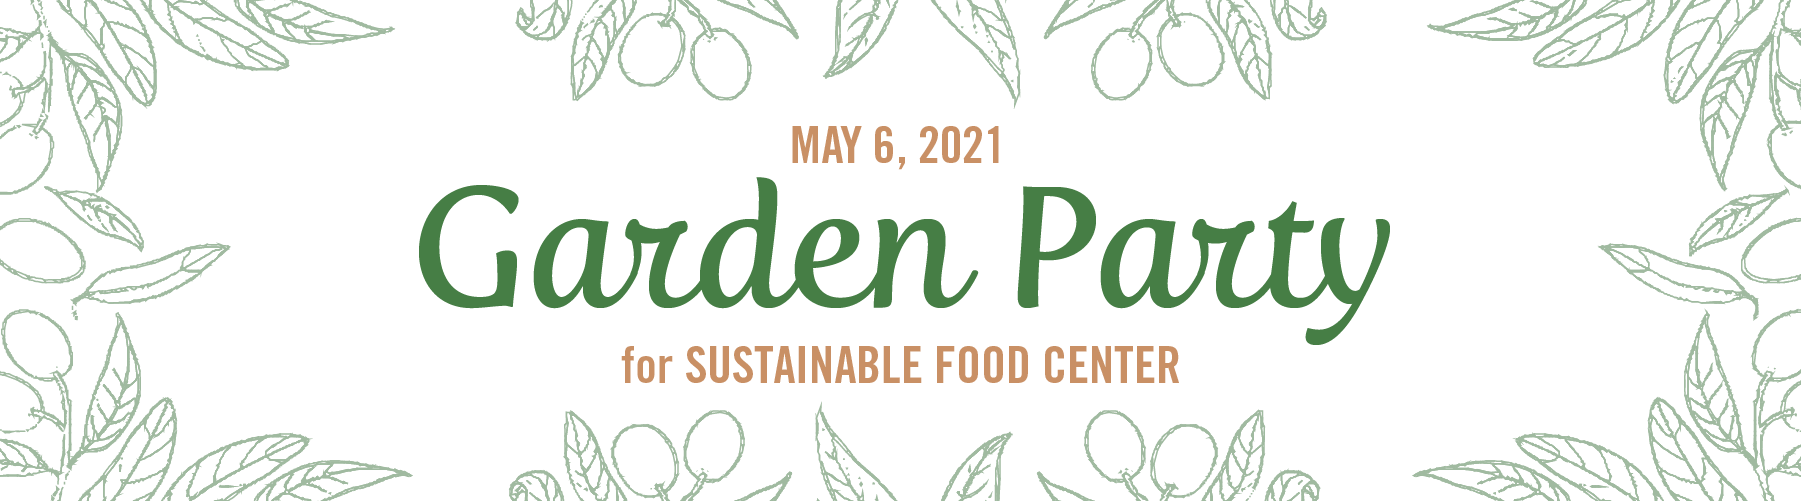 Garden Party Logo with Decorative Border - 2021 - Website Banner_1.png